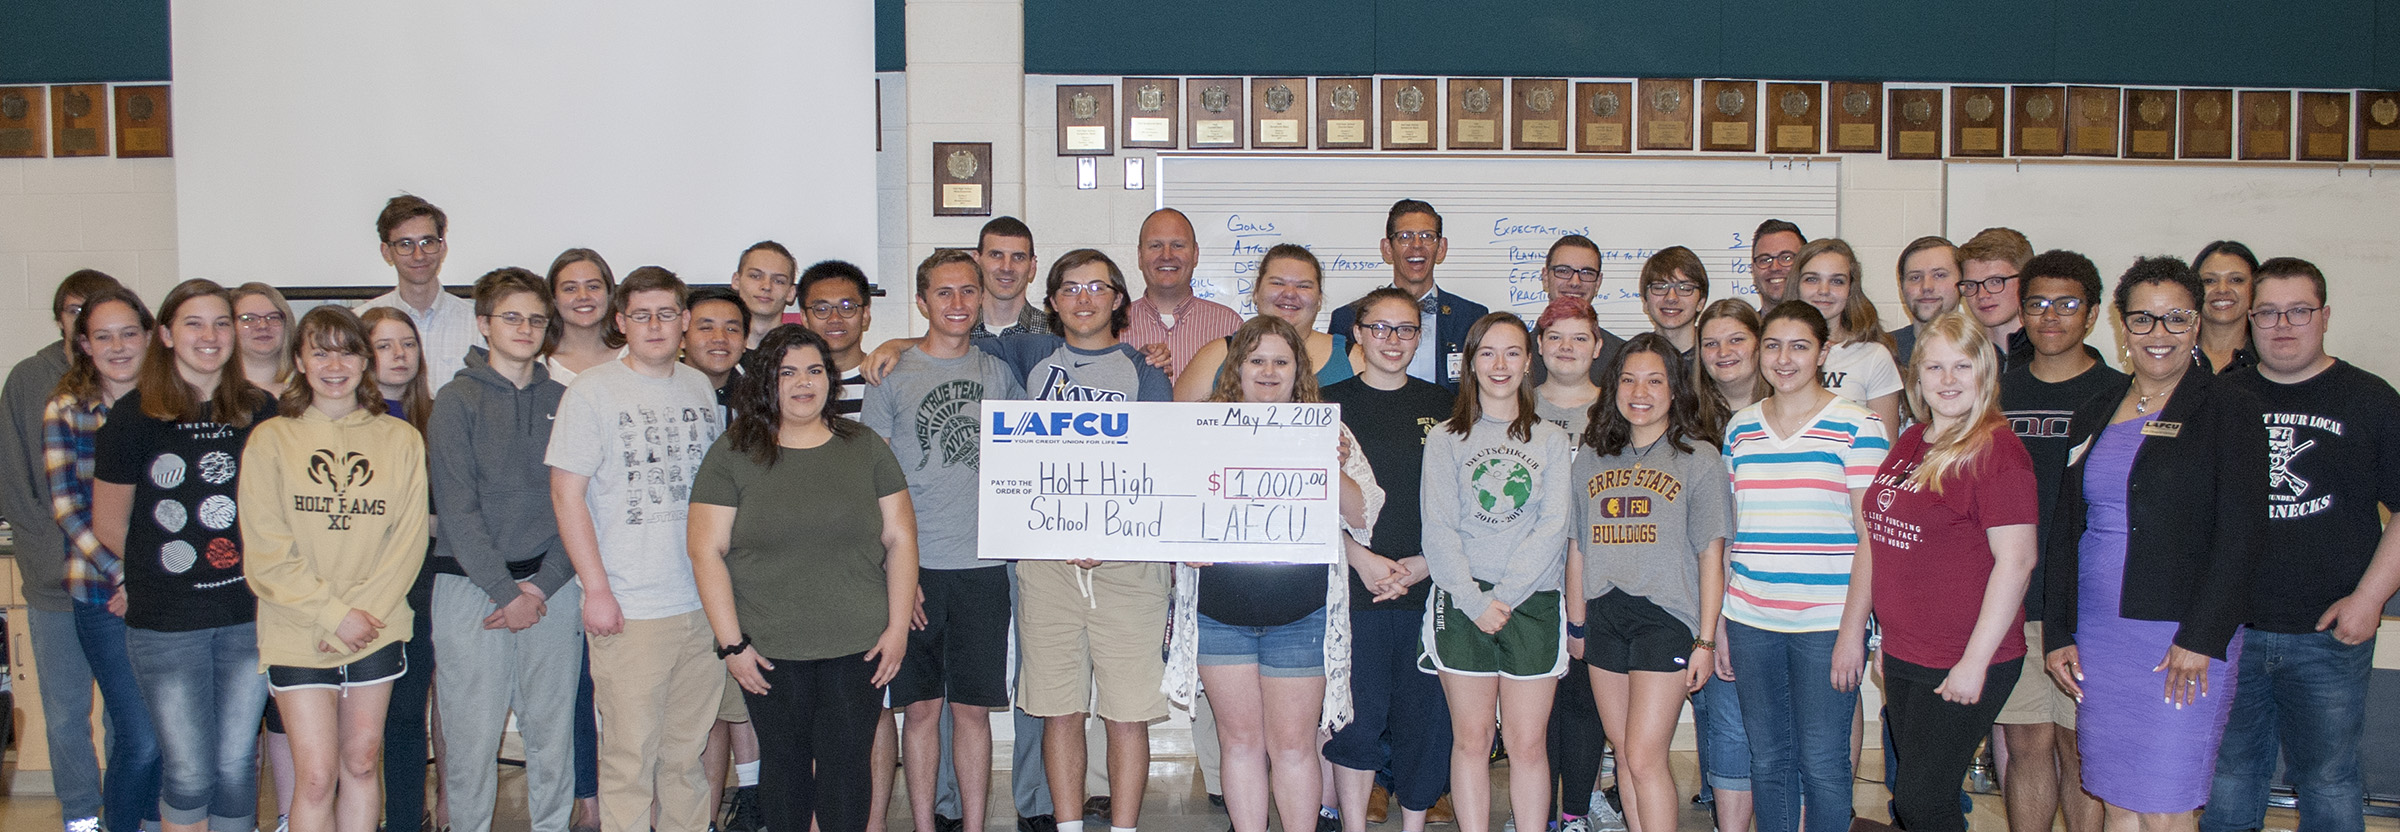 Some members of Holt High School's five bands accept the LAFCU donation on behalf of the school's band program. Also pictured are representatives of the school district, the high school, LAFCU and Lansing Regional Chamber of Commerce.